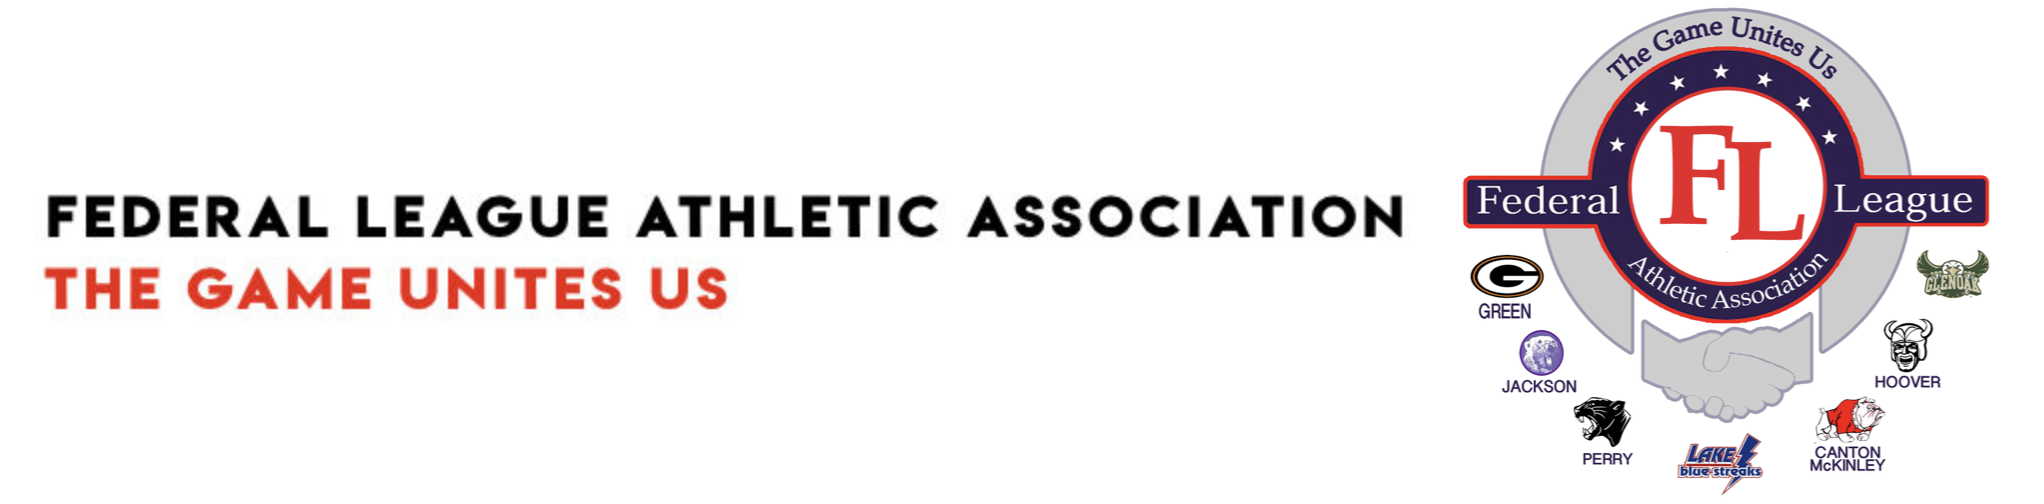 Federal League Athletic Association